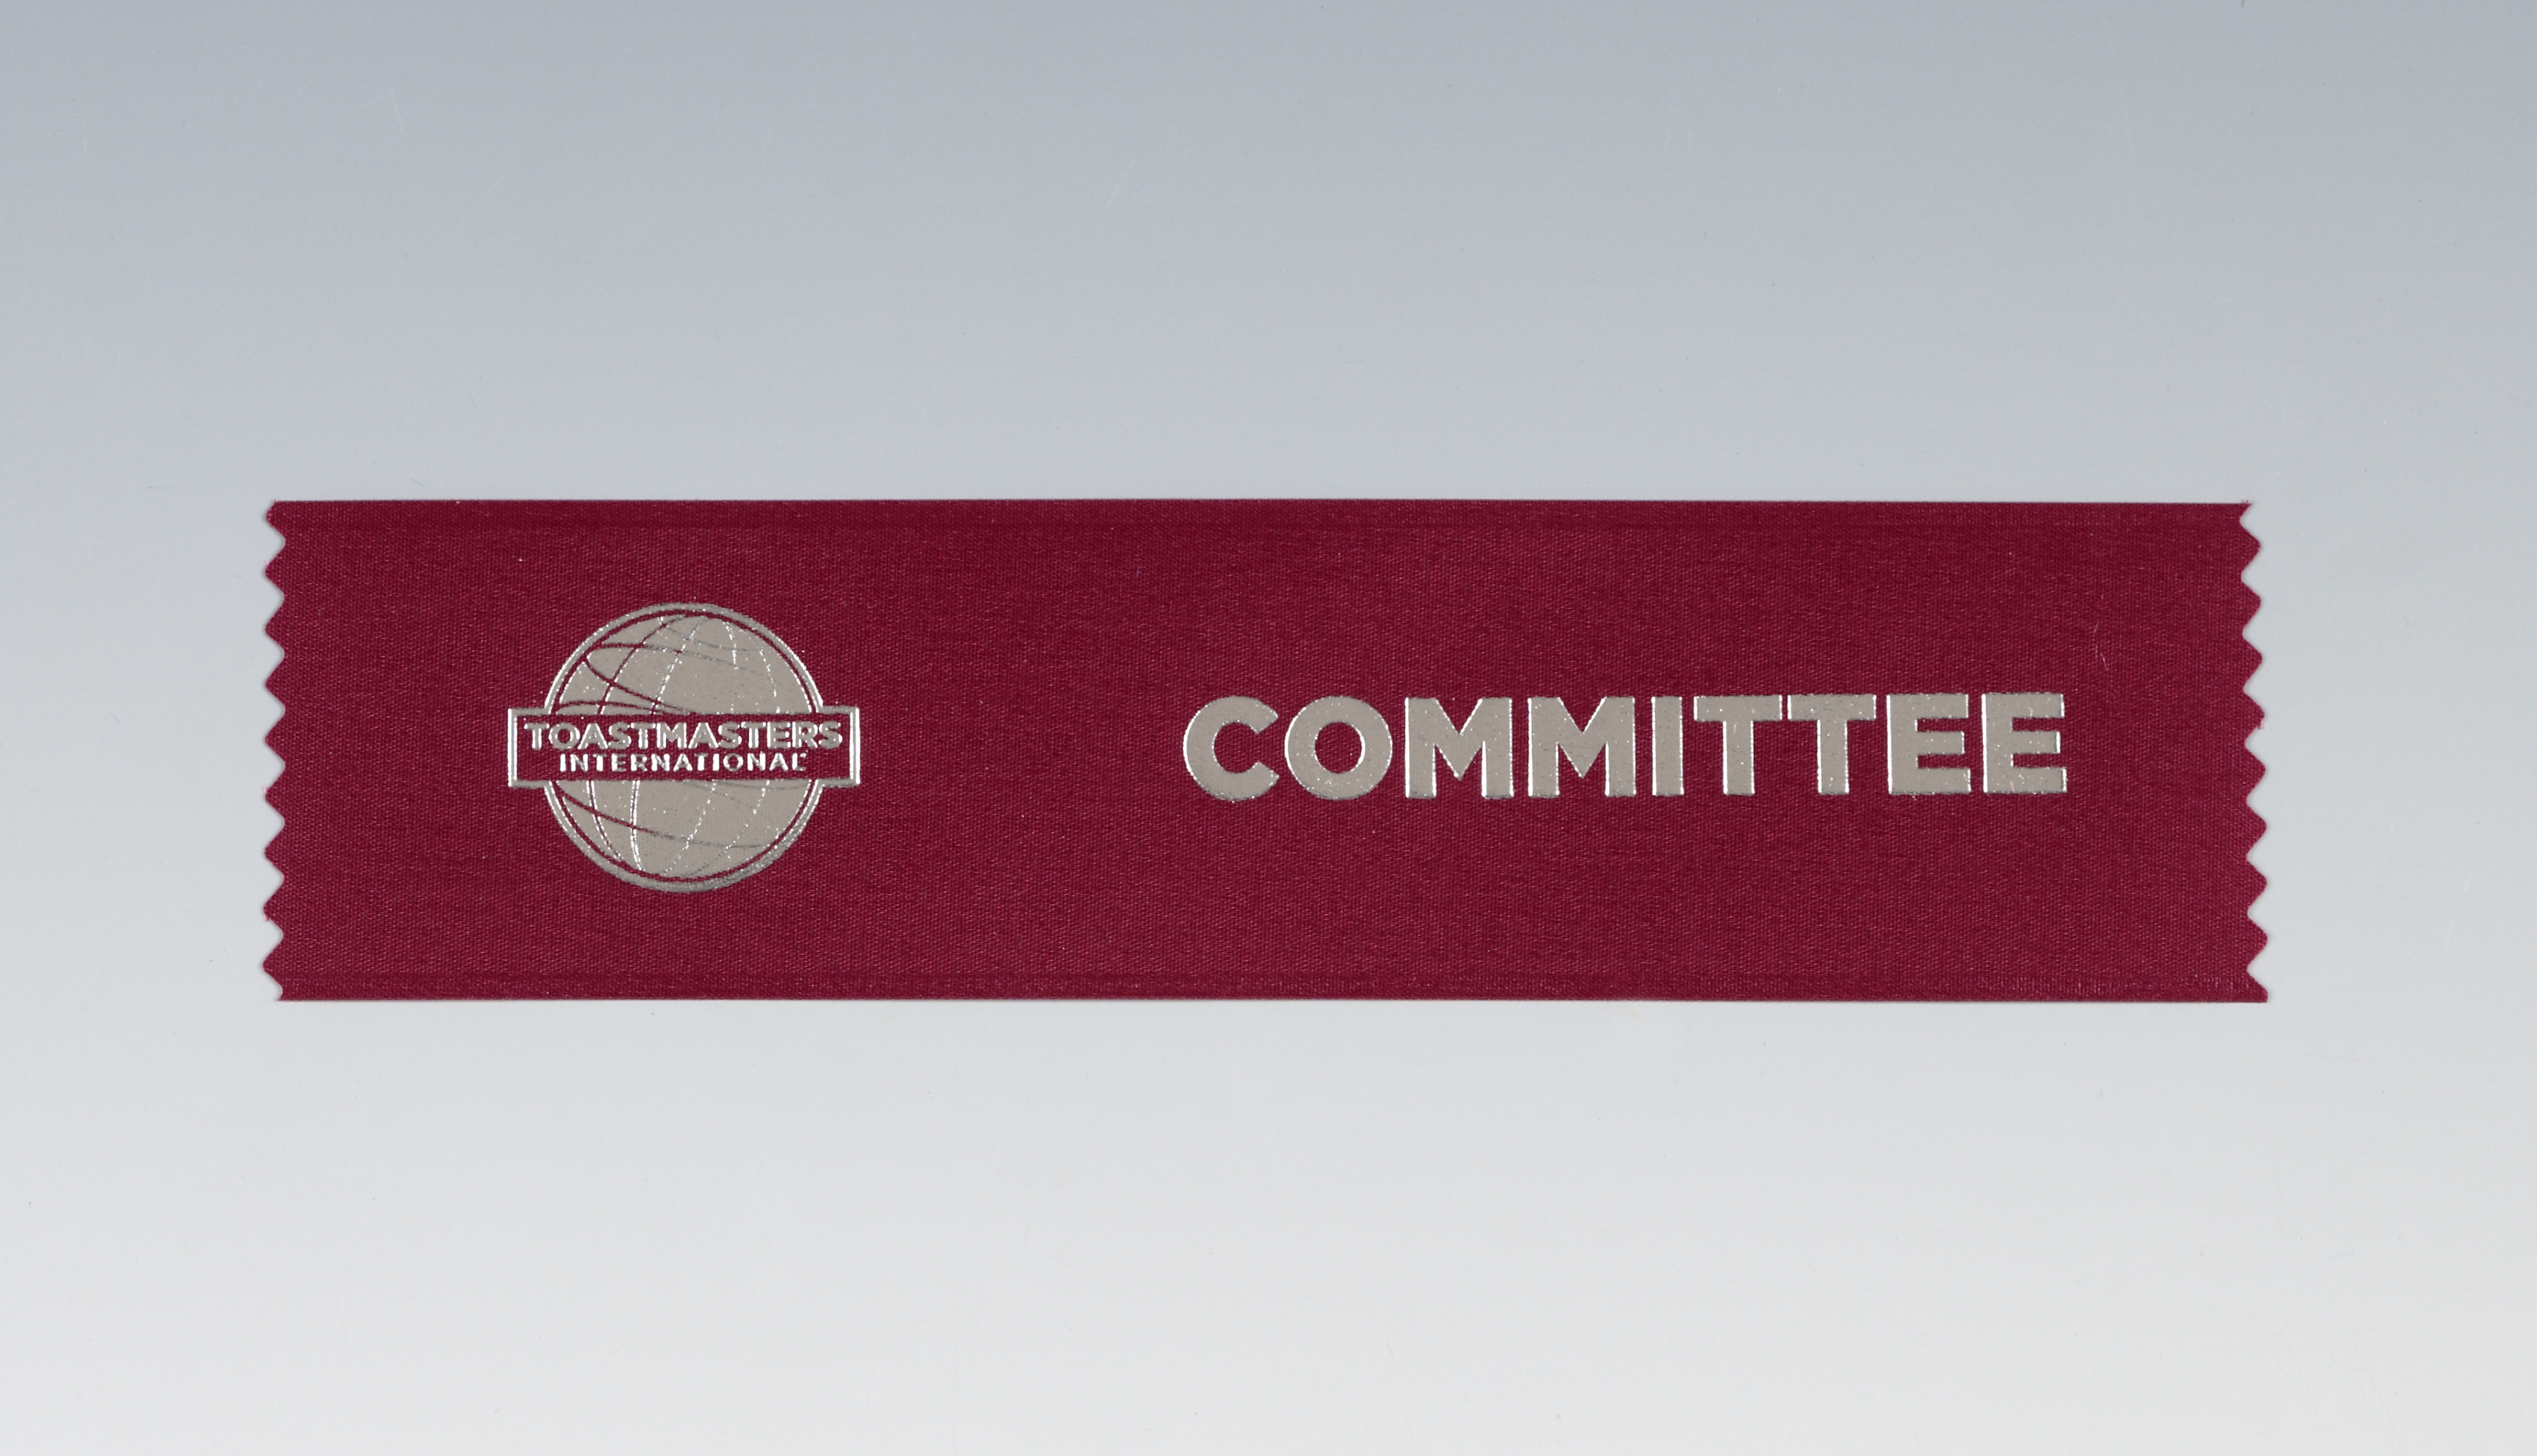 Committee Ribbon